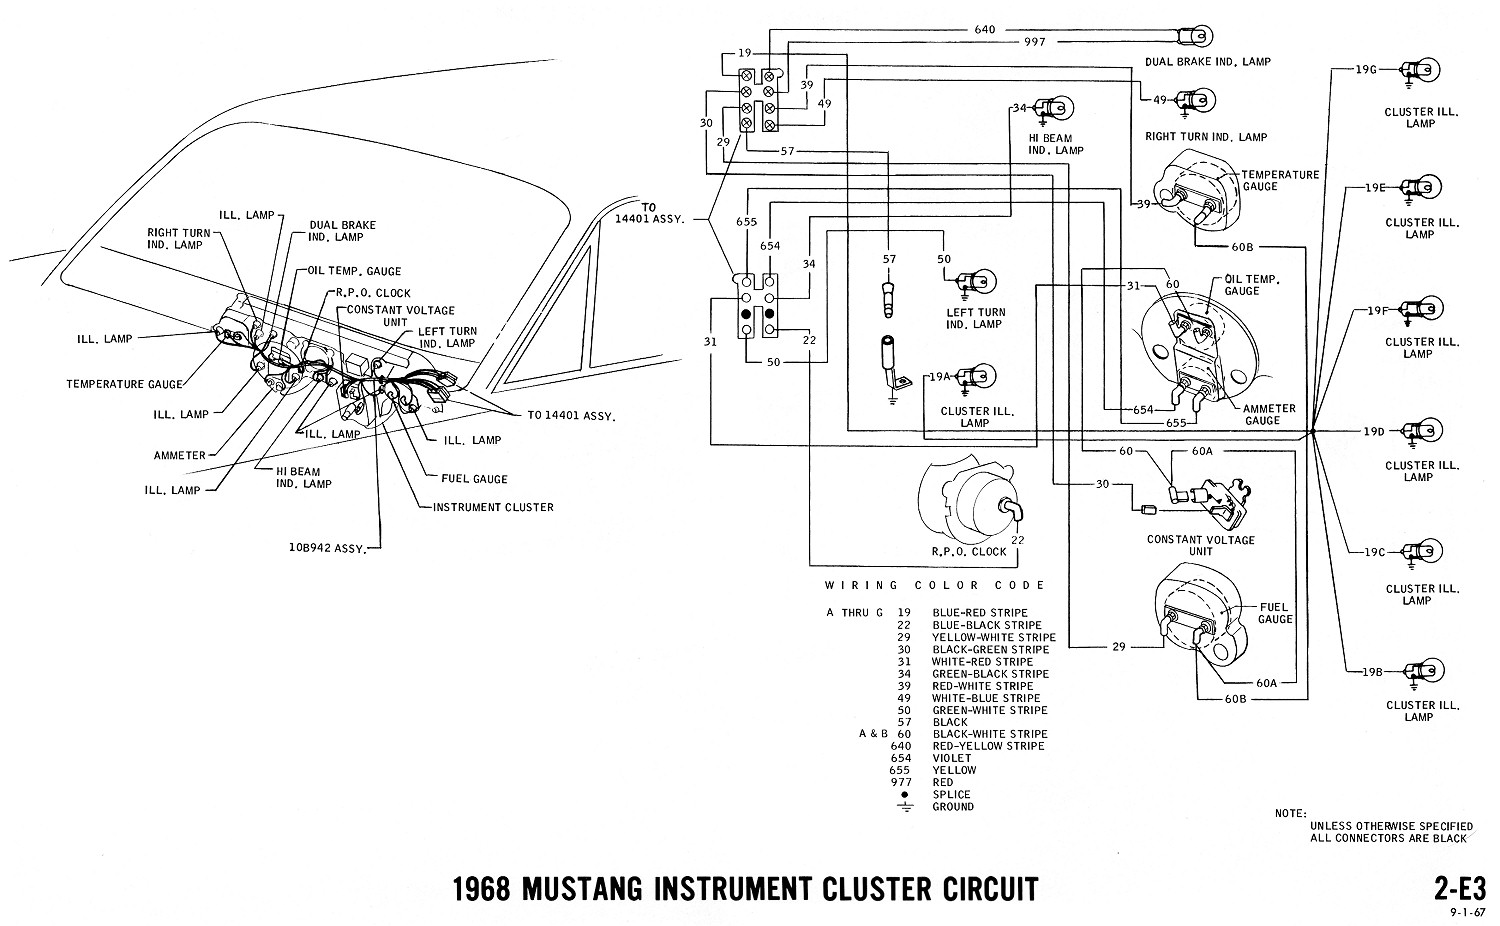 New Beetle Fuse Diagram in addition 221450506657449789 moreover 1968 Vw Beetle Autostick Wiring Diagram further Volkswagen Karmann Ghia Parts Catalog also 1987 Vw Cabriolet Wiring Diagram. on 1968 vw beetle fuse box wiring